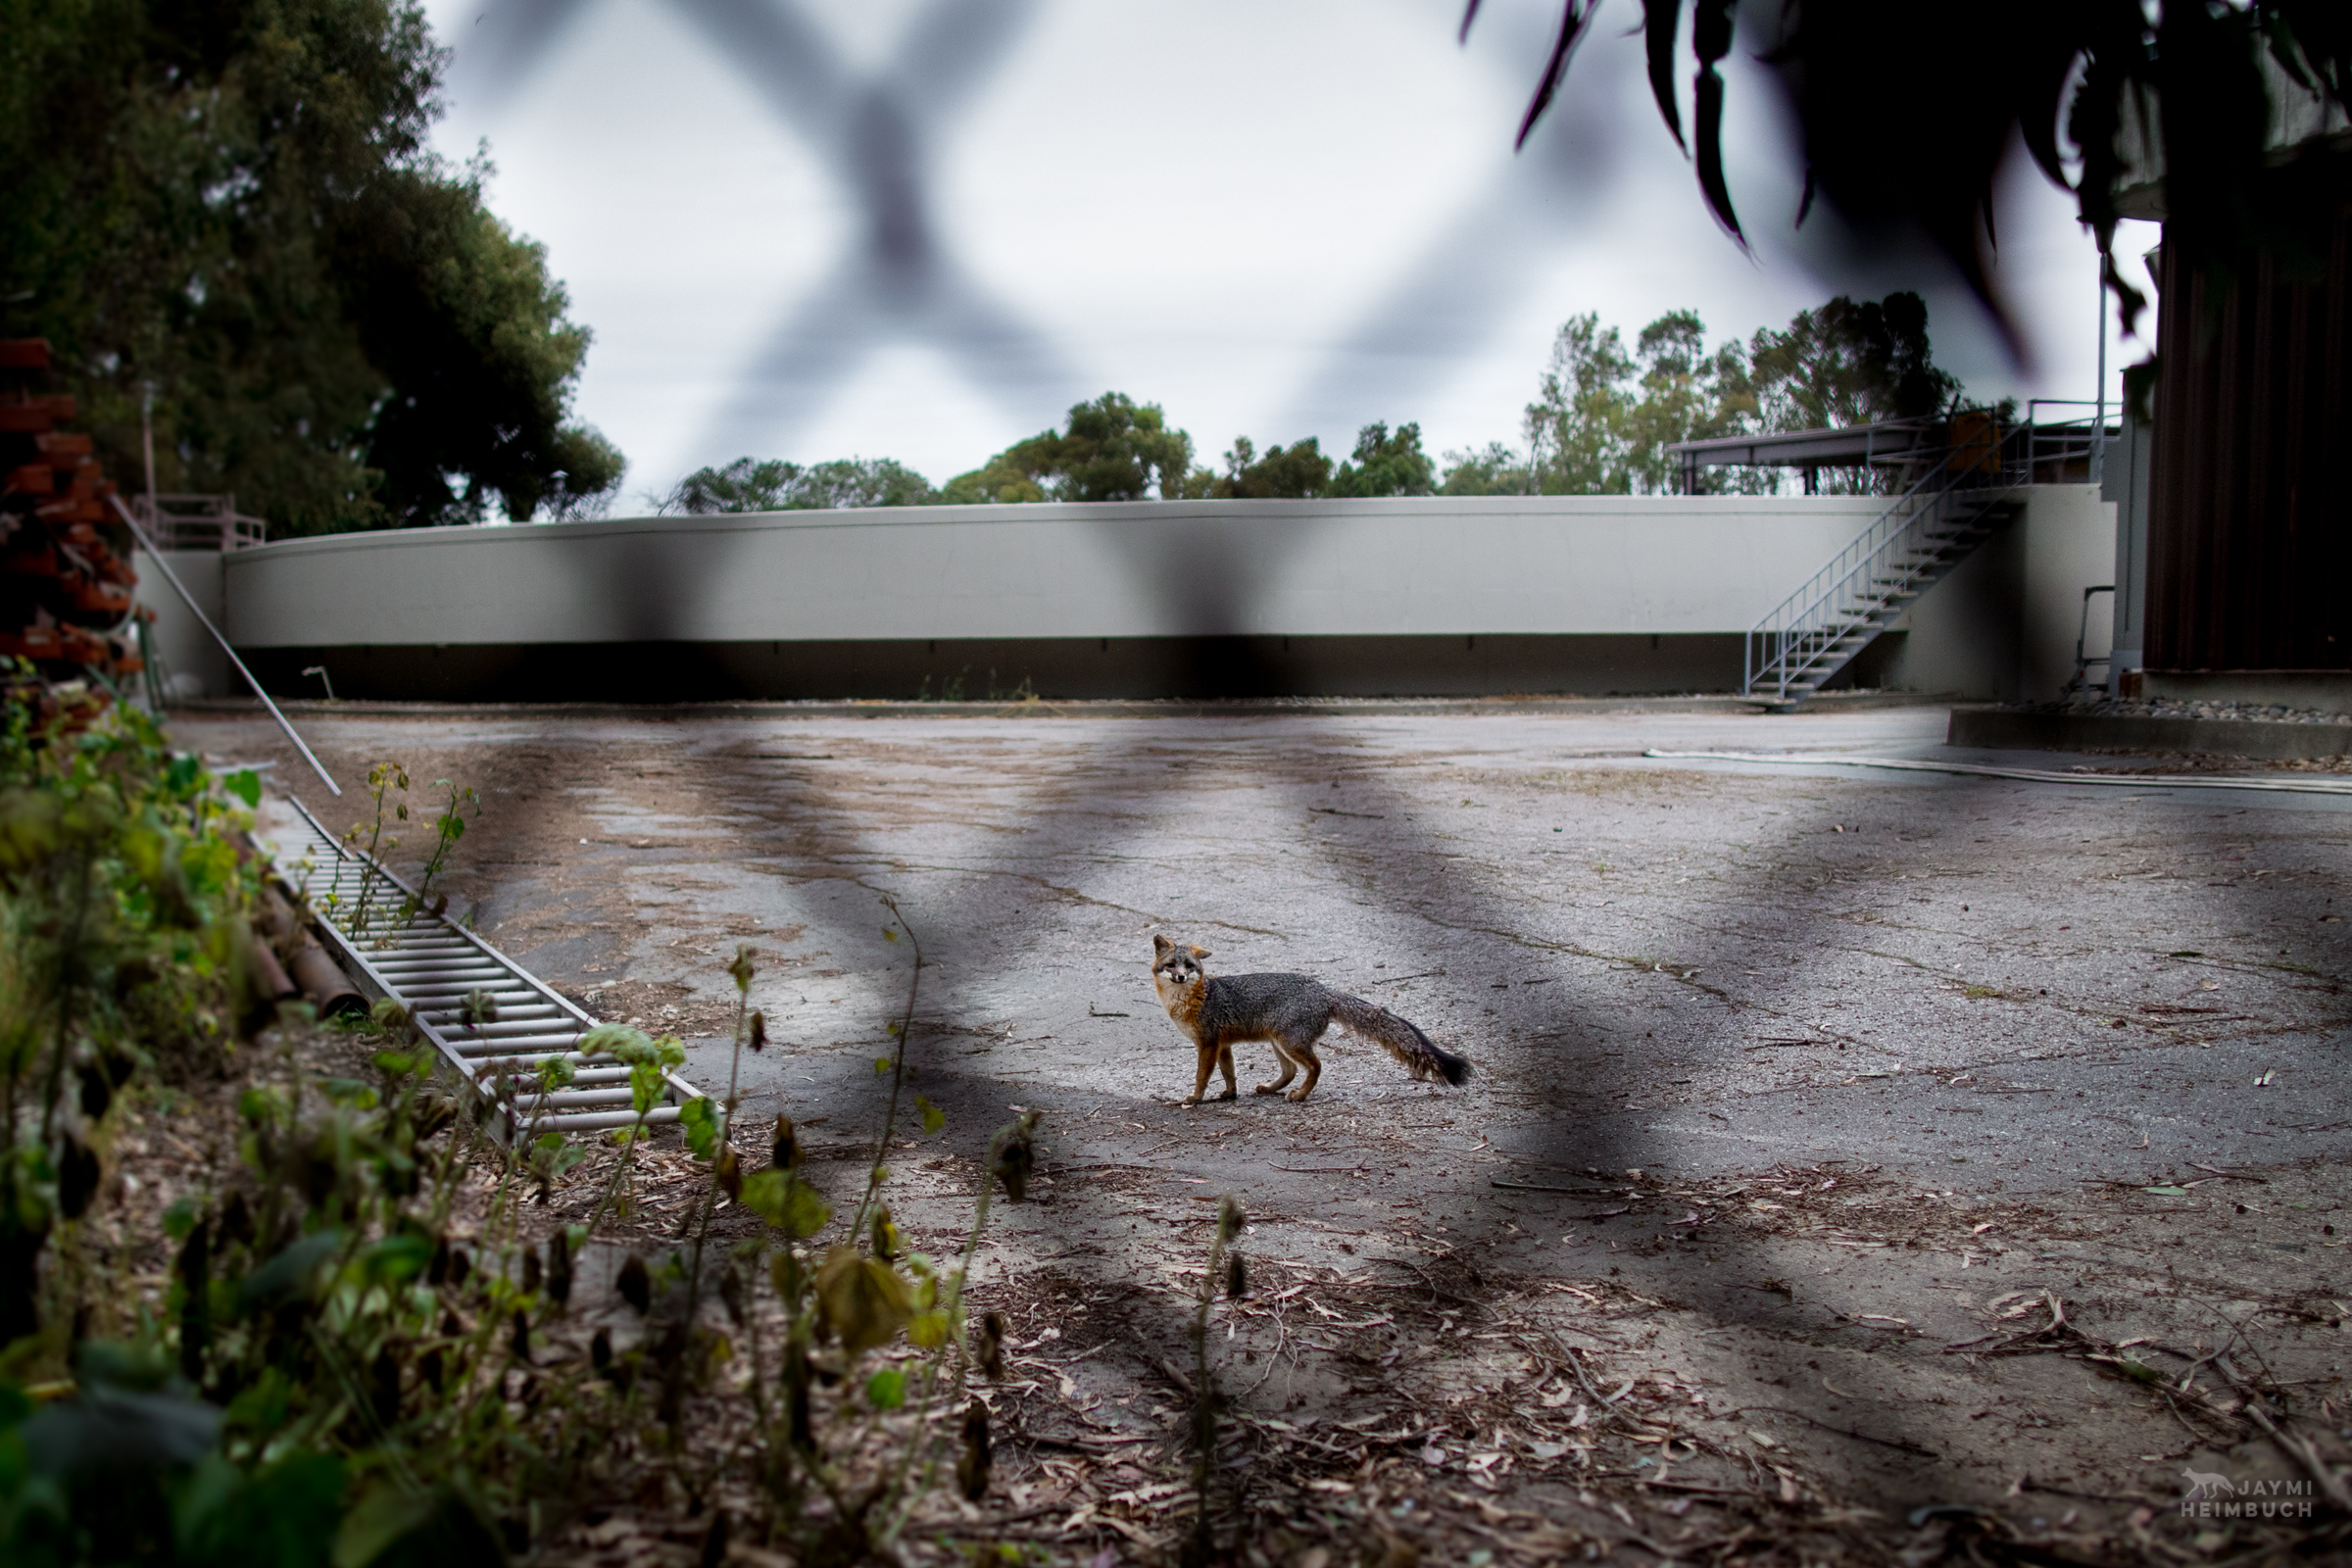 Gray fox (Urocyon cinereoargenteus) adult in a water treatment plant, Palo Alto, California. This fox was monitored by a local wildlife project investigating the territories and habits of a small urban gray fox population and the need for wildlife corridors for genetic diversity. Since this image was taken, the entire population of foxes in the area was wiped out by a canine distempter outbreak. Gray foxes are only recently starting to return to the area.